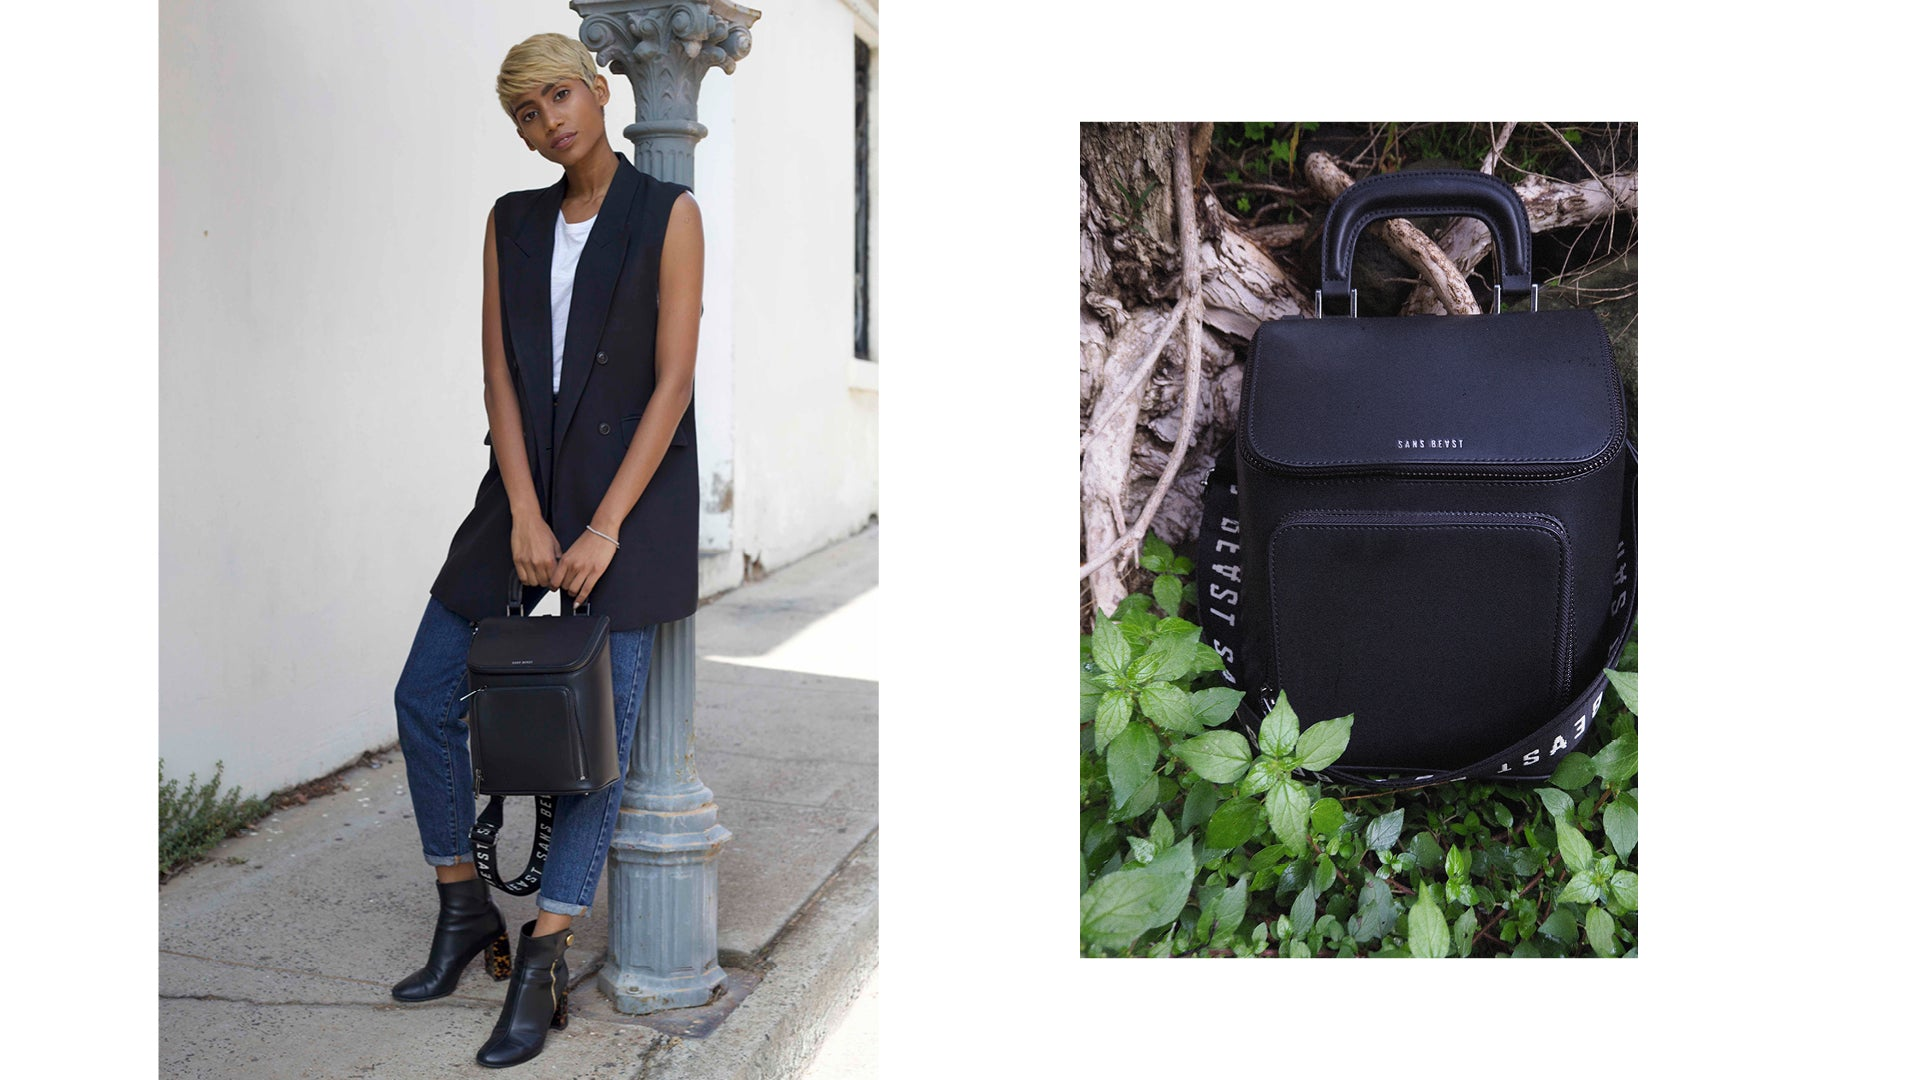 Two images, side by side: Shamita holding a Brief Liaison Tote + a still life image of the tote sitting in fresh greenery.